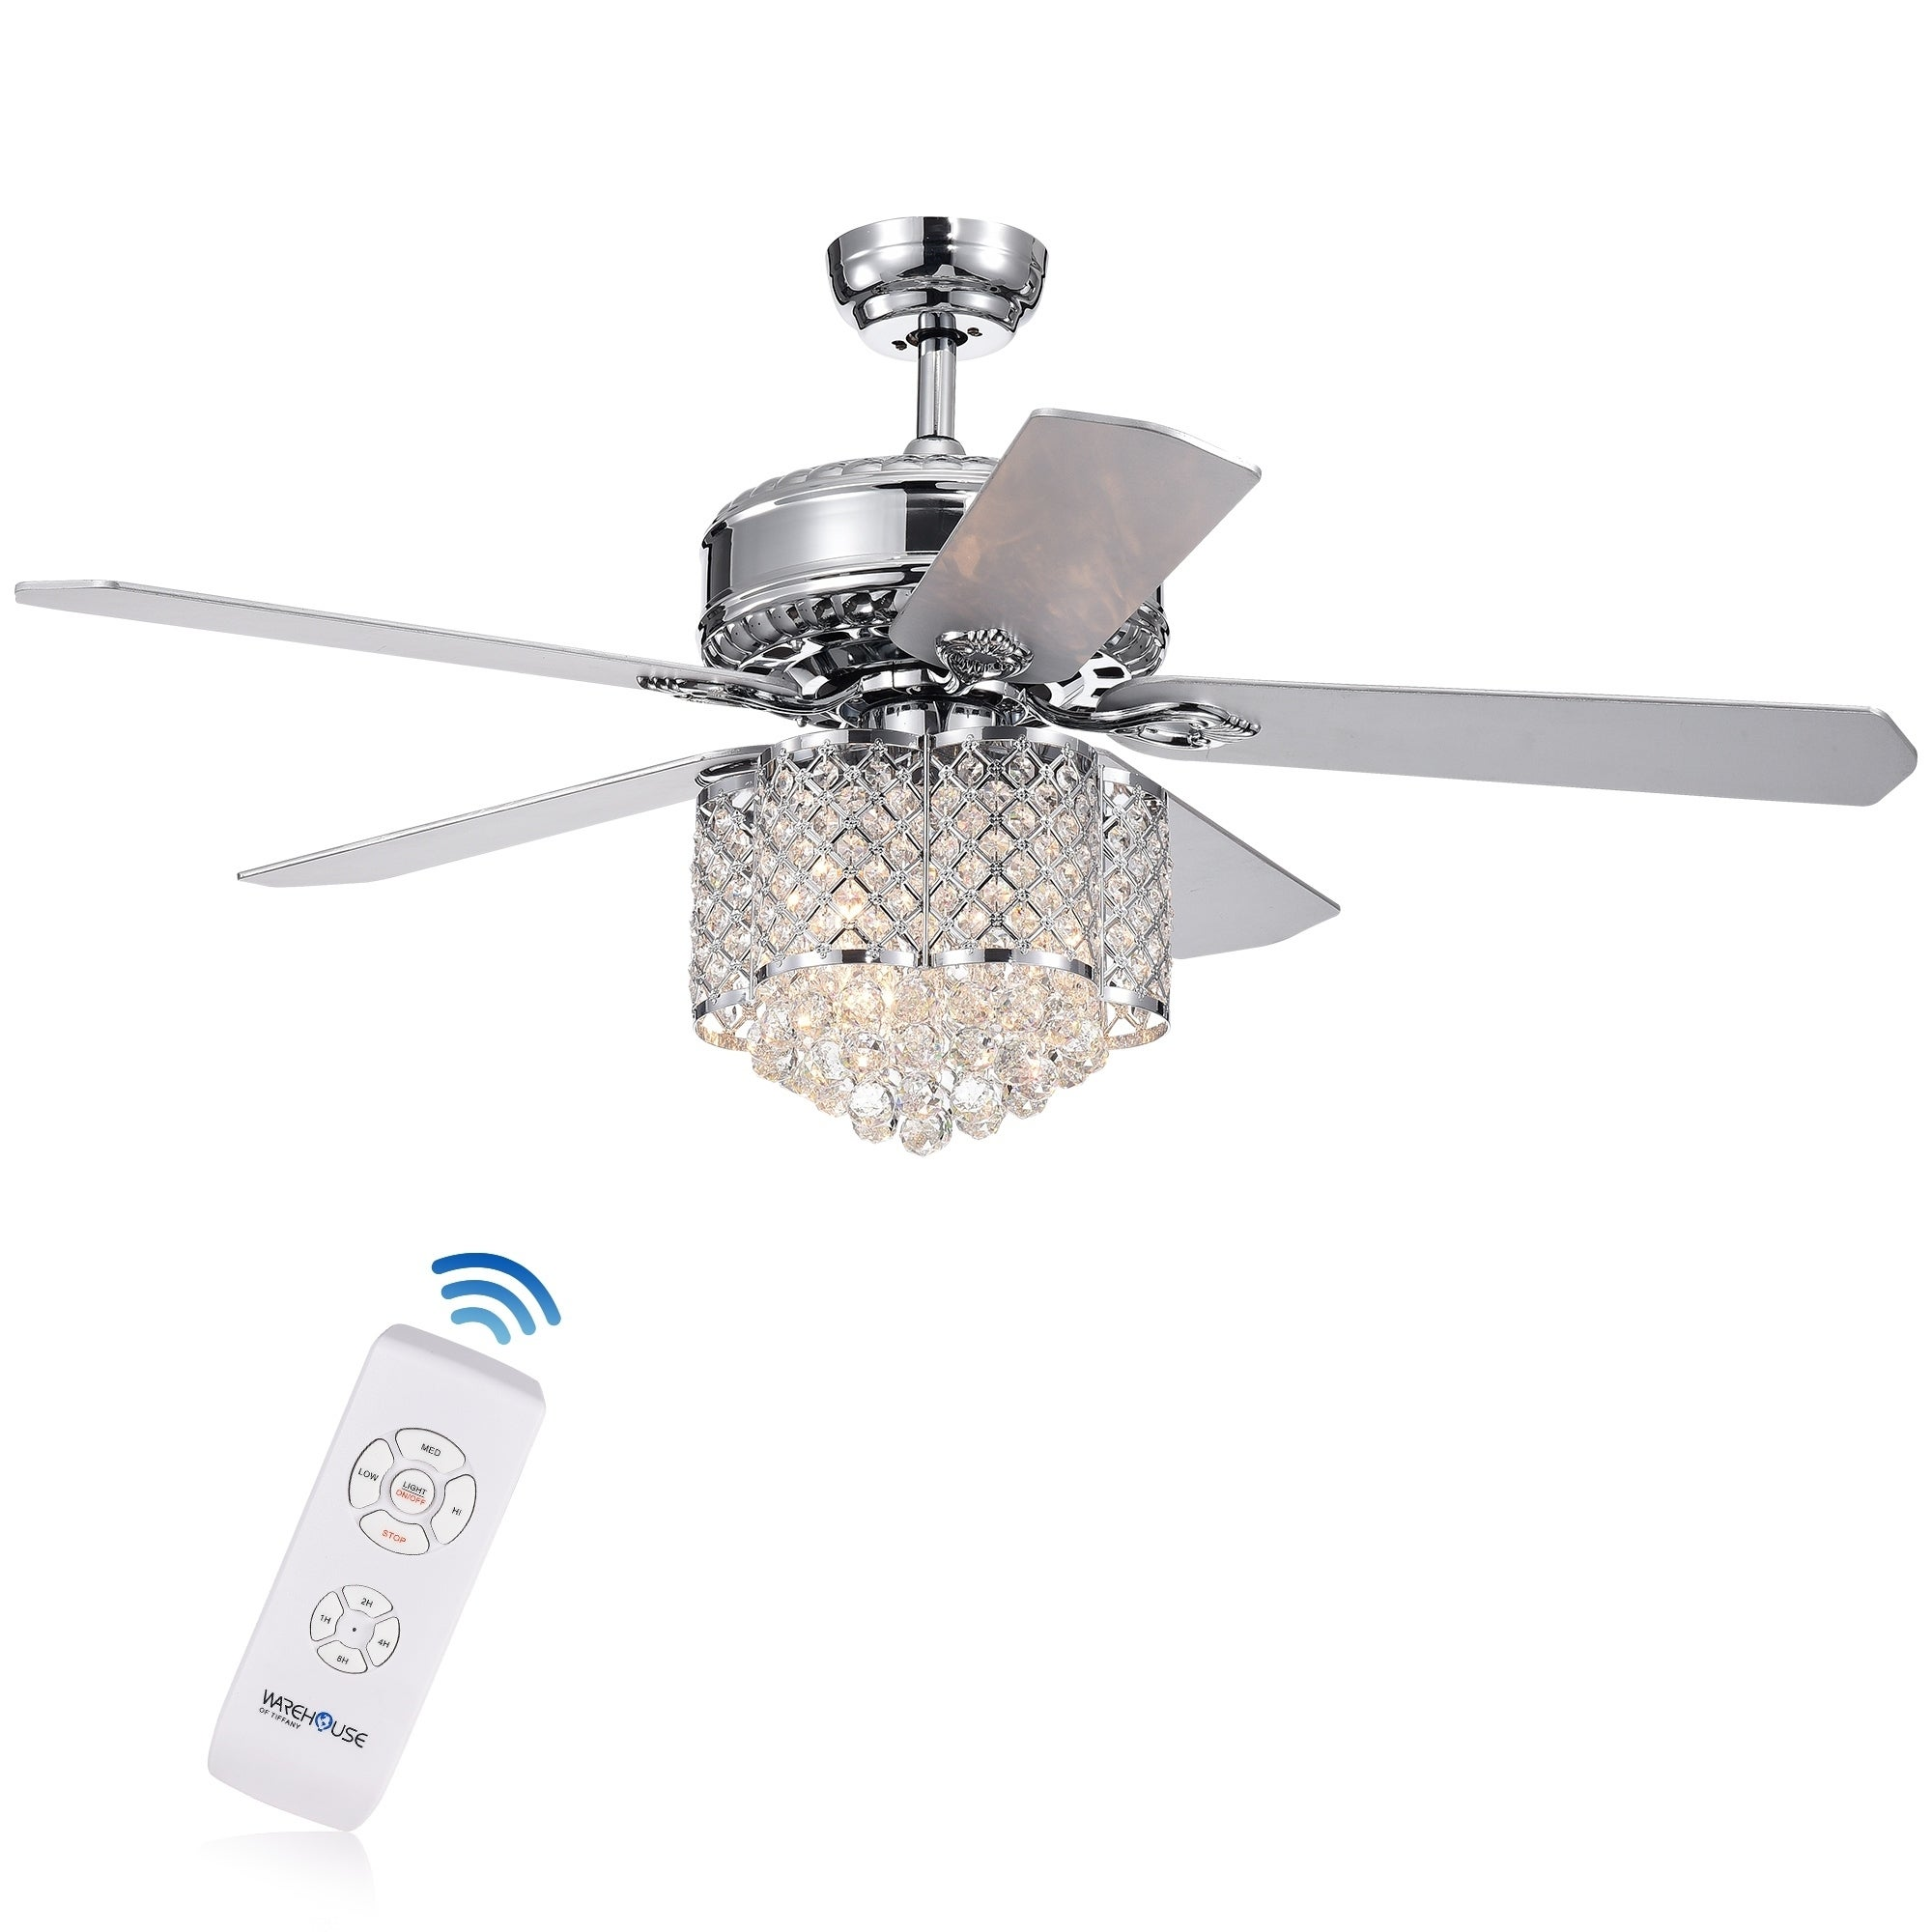 Shop Deidor 5 Blade 52 Inch Chrome Ceiling Fan With 3 Light Crystal Google On Wires And Wiring A Without Chandelier Remote Controlled Free Shipping Today 22108345